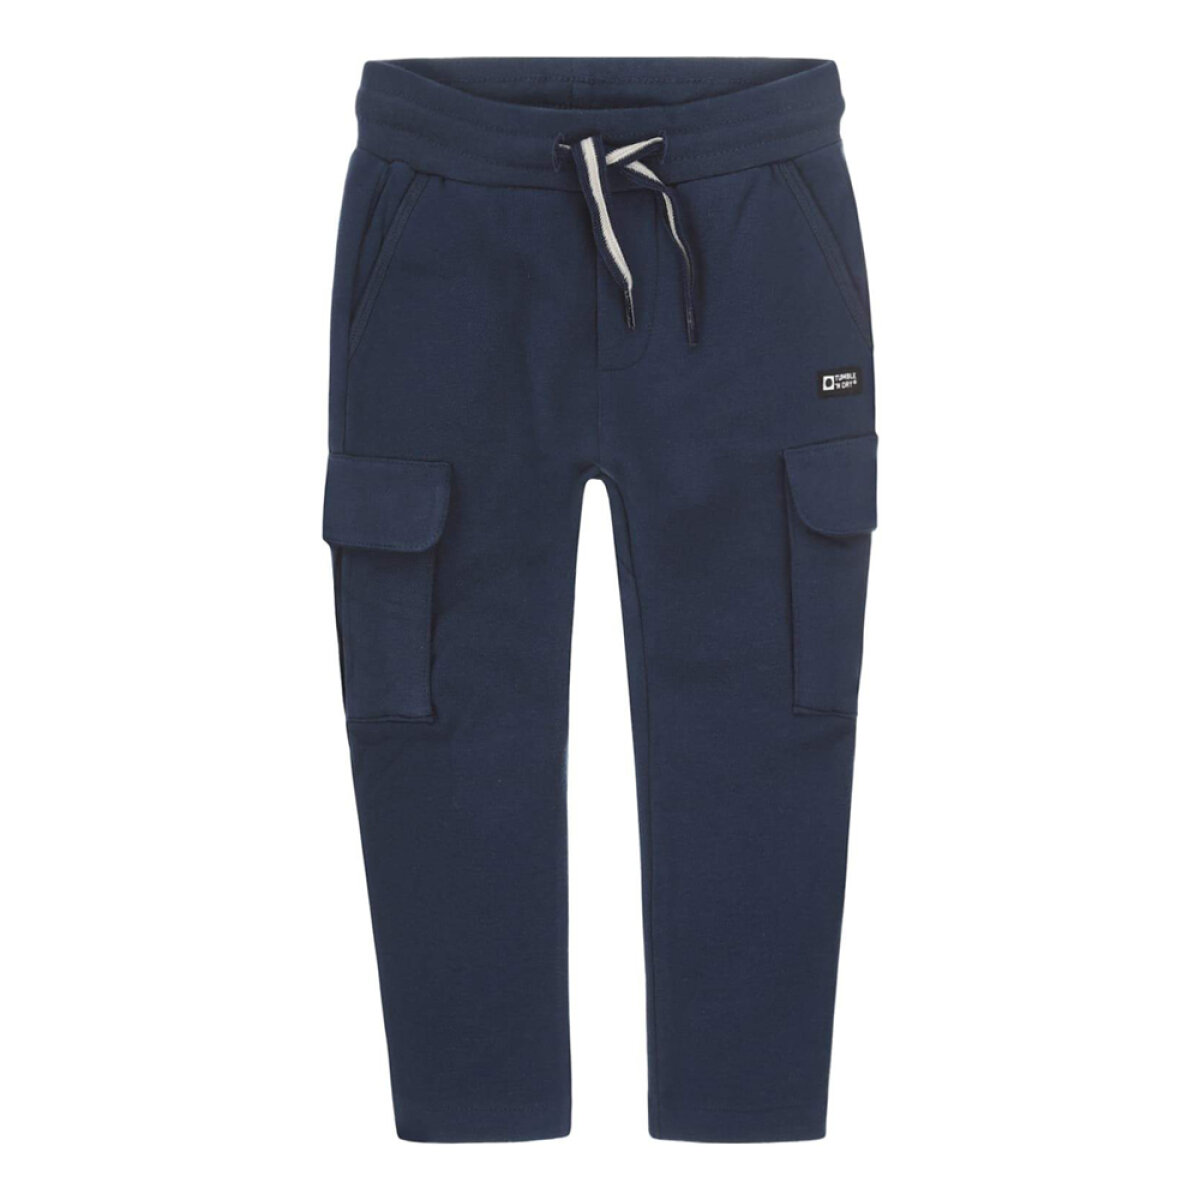 Tumble 'n Dry jongens sweatpants 3.011.000.585/Dressblues blauw